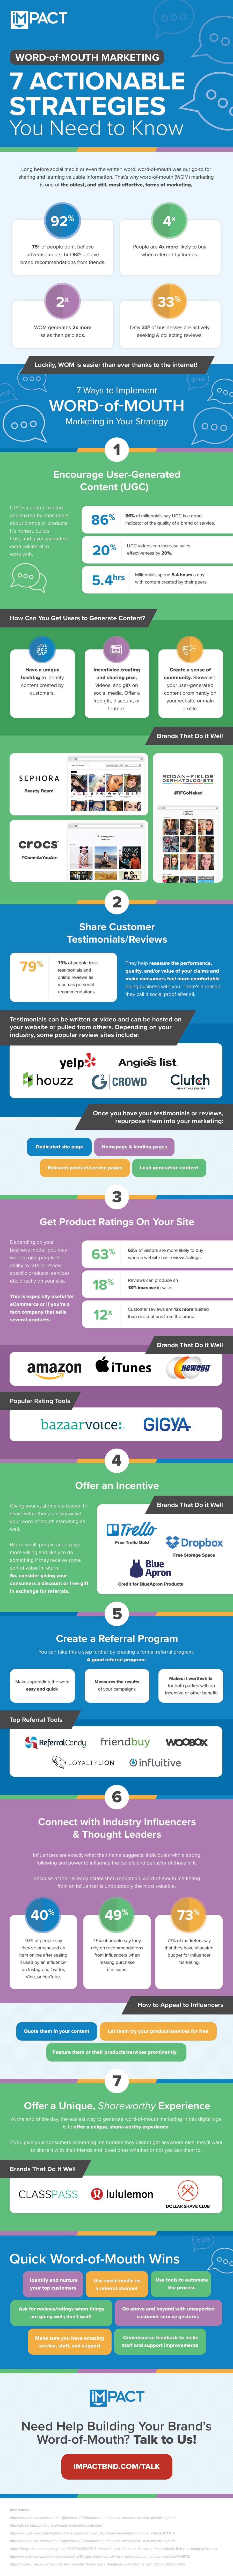 word-of-mouth-marketing-infographic---compressed.jpg